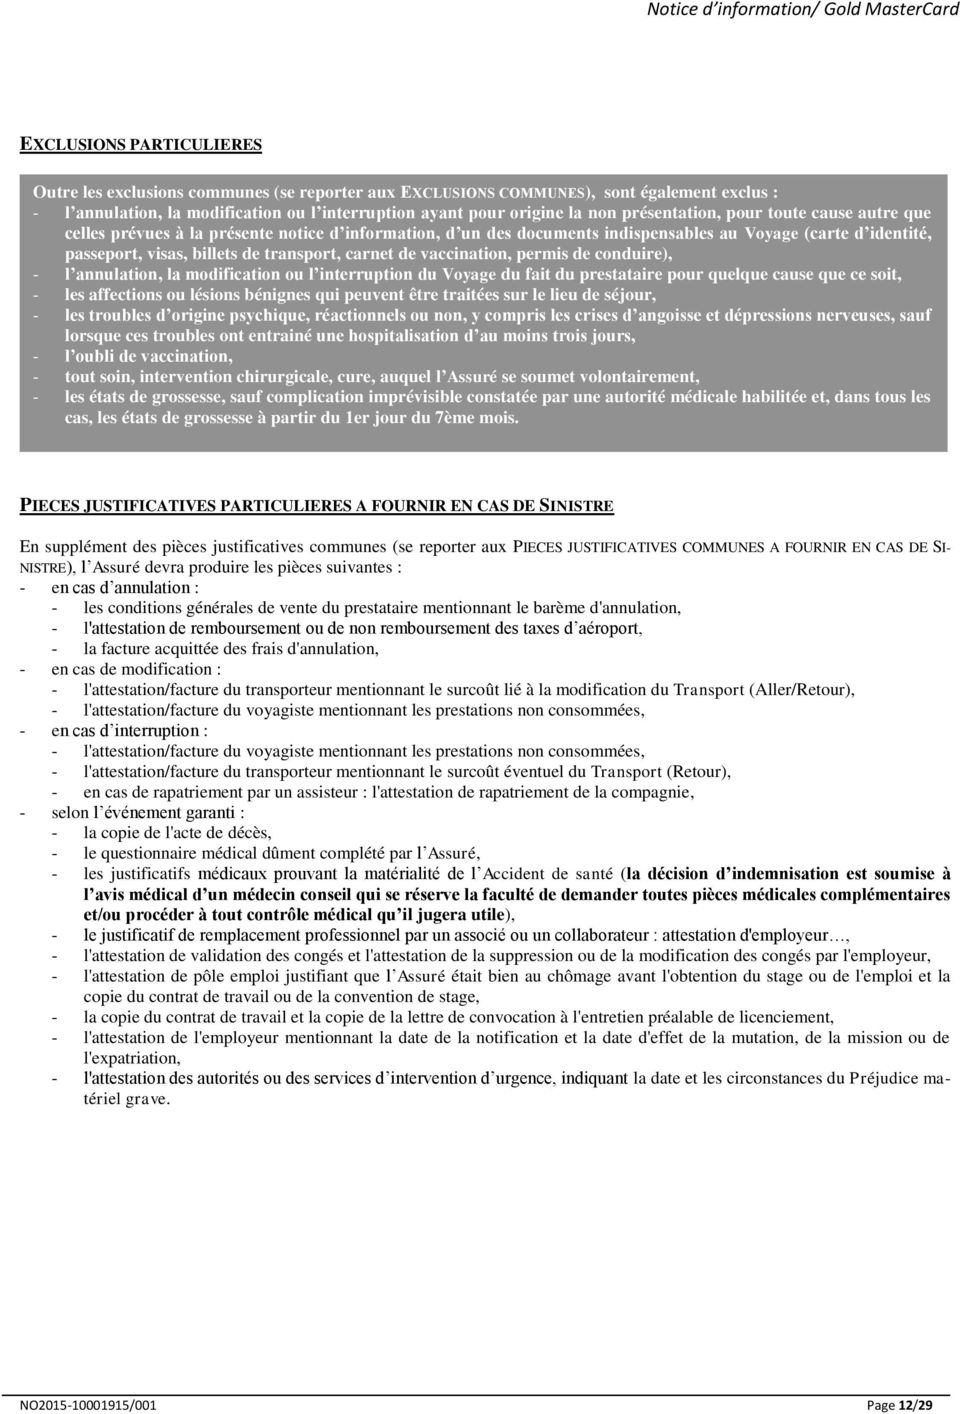 carnet de vaccination, permis de conduire), - l annulation, la modification ou l interruption du Voyage du fait du prestataire pour quelque cause que ce soit, - les affections ou lésions bénignes qui